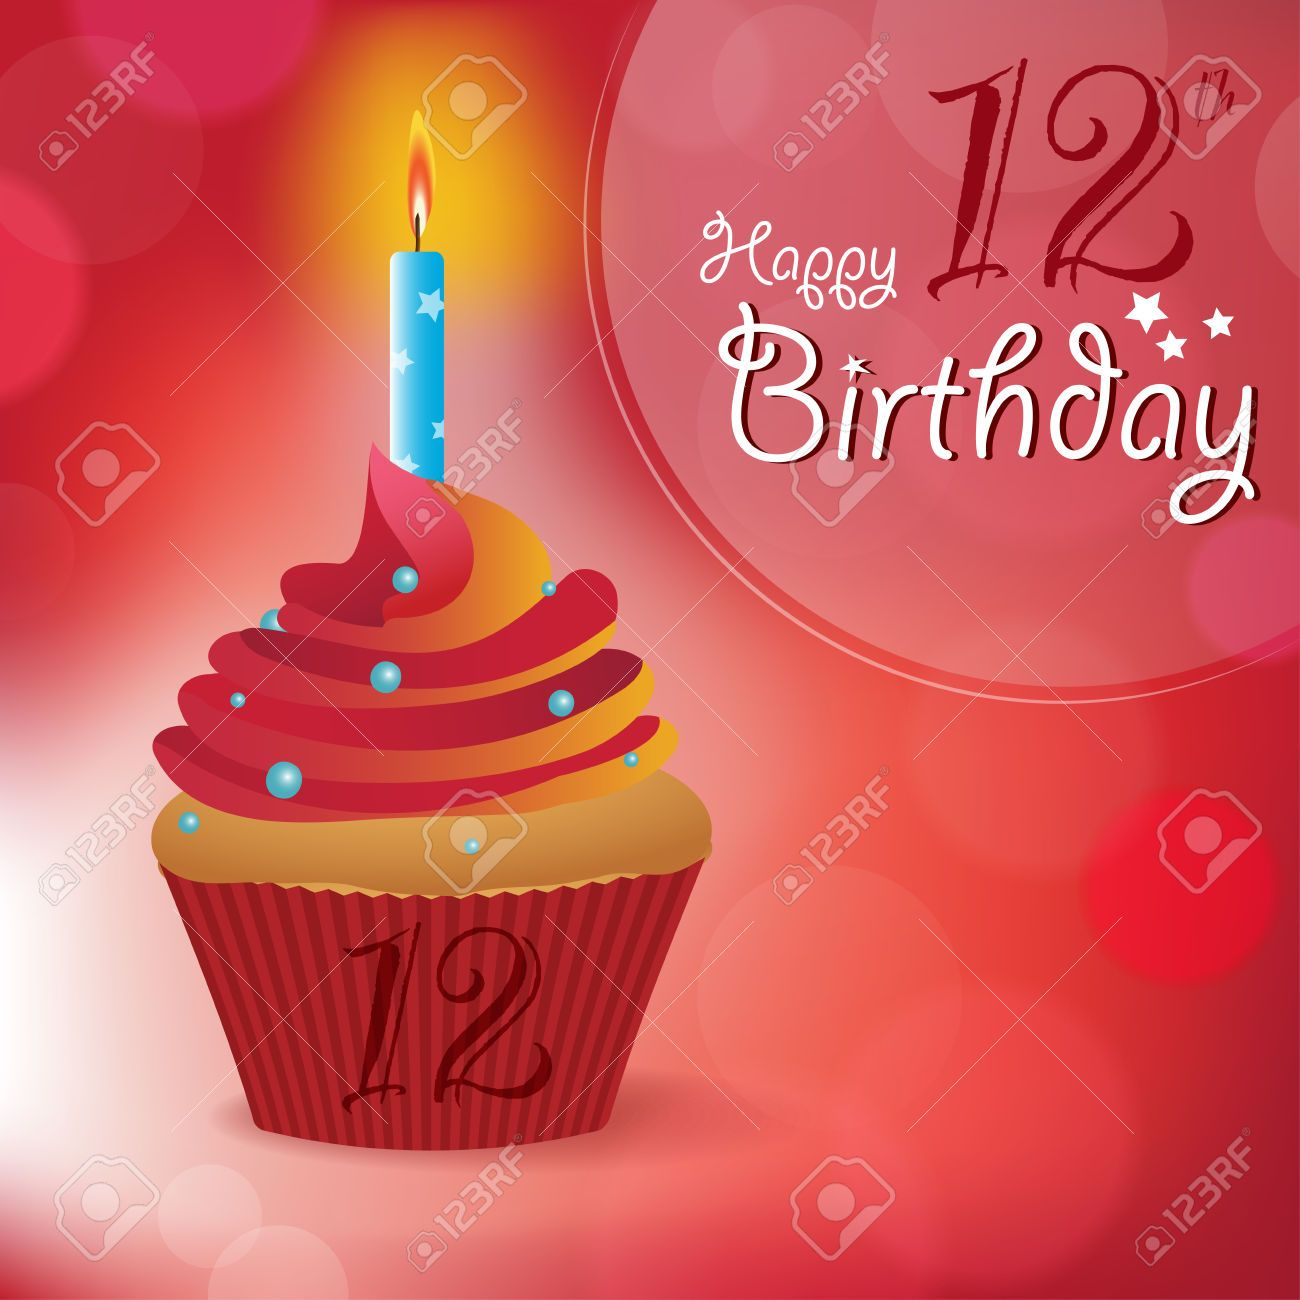 30649436 happy 12th birthday greeting invitation message bokeh happy birthday greeting invitation message bokeh vector background with a candle on a cupcake stock vector kristyandbryce Images